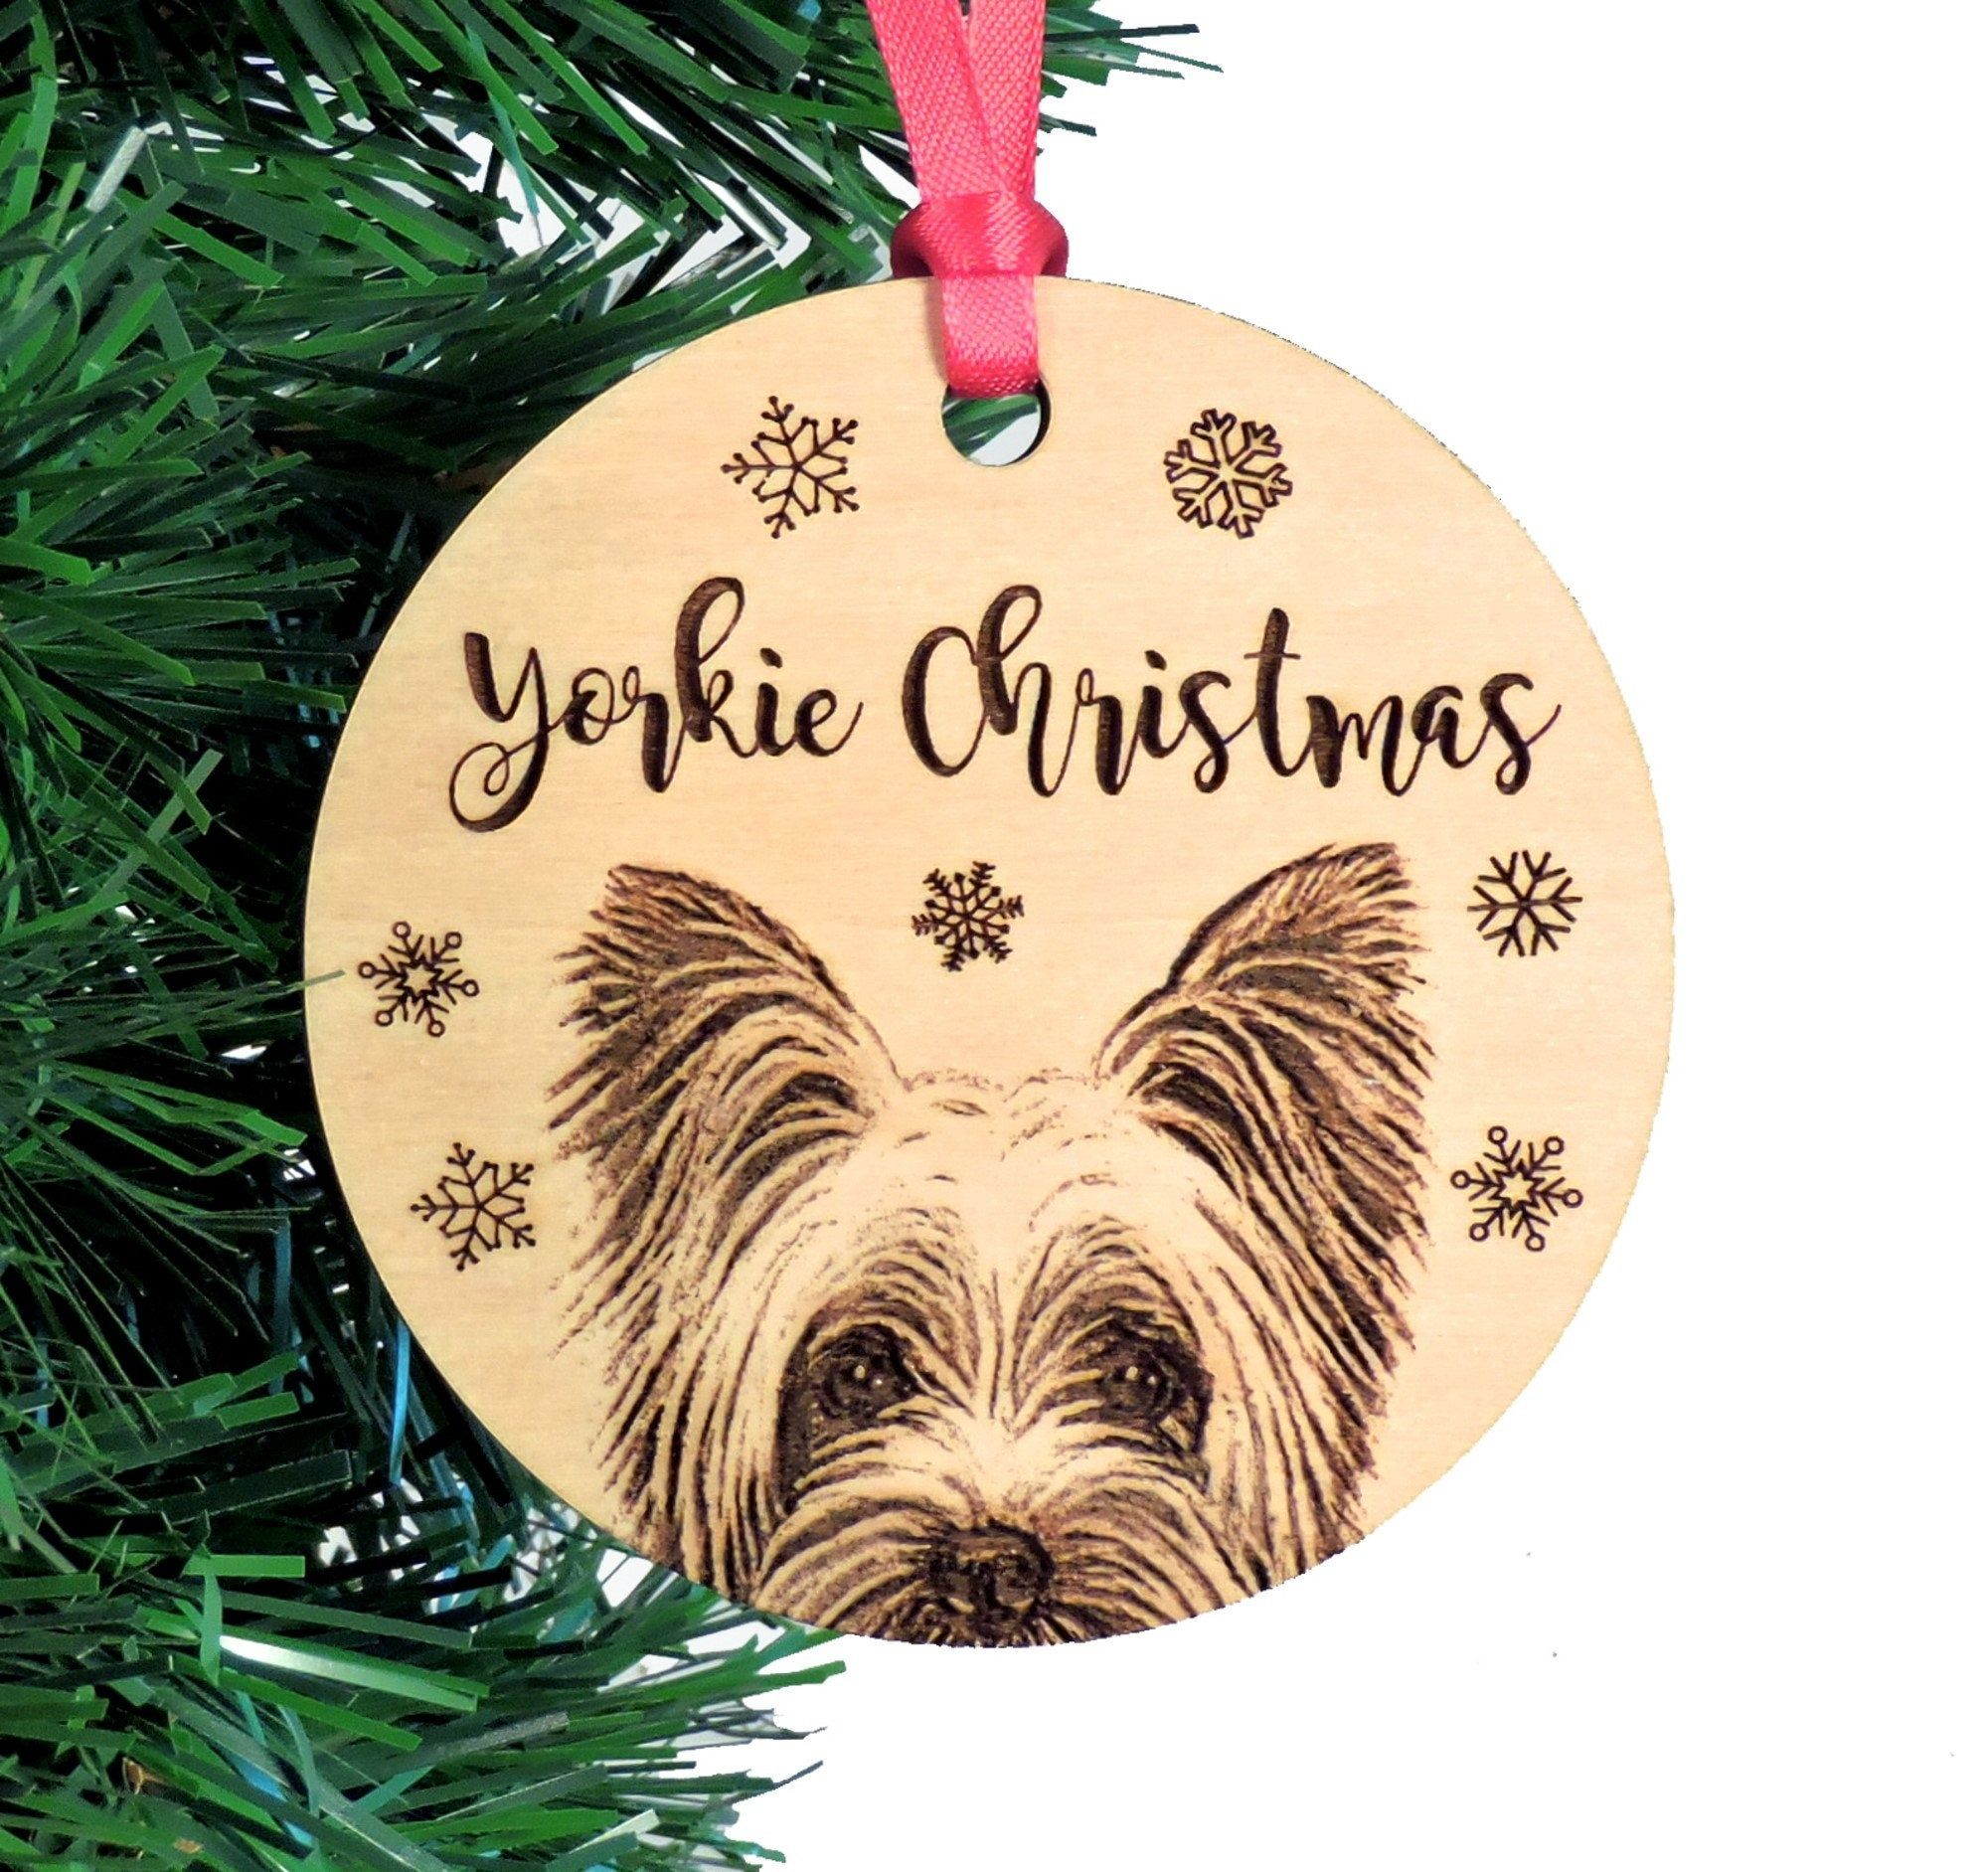 Yorkshire Terrier Ornament Yorkie Gift Add Custom Text Etsy Yorkie Dog Gifts Dachshund Gifts